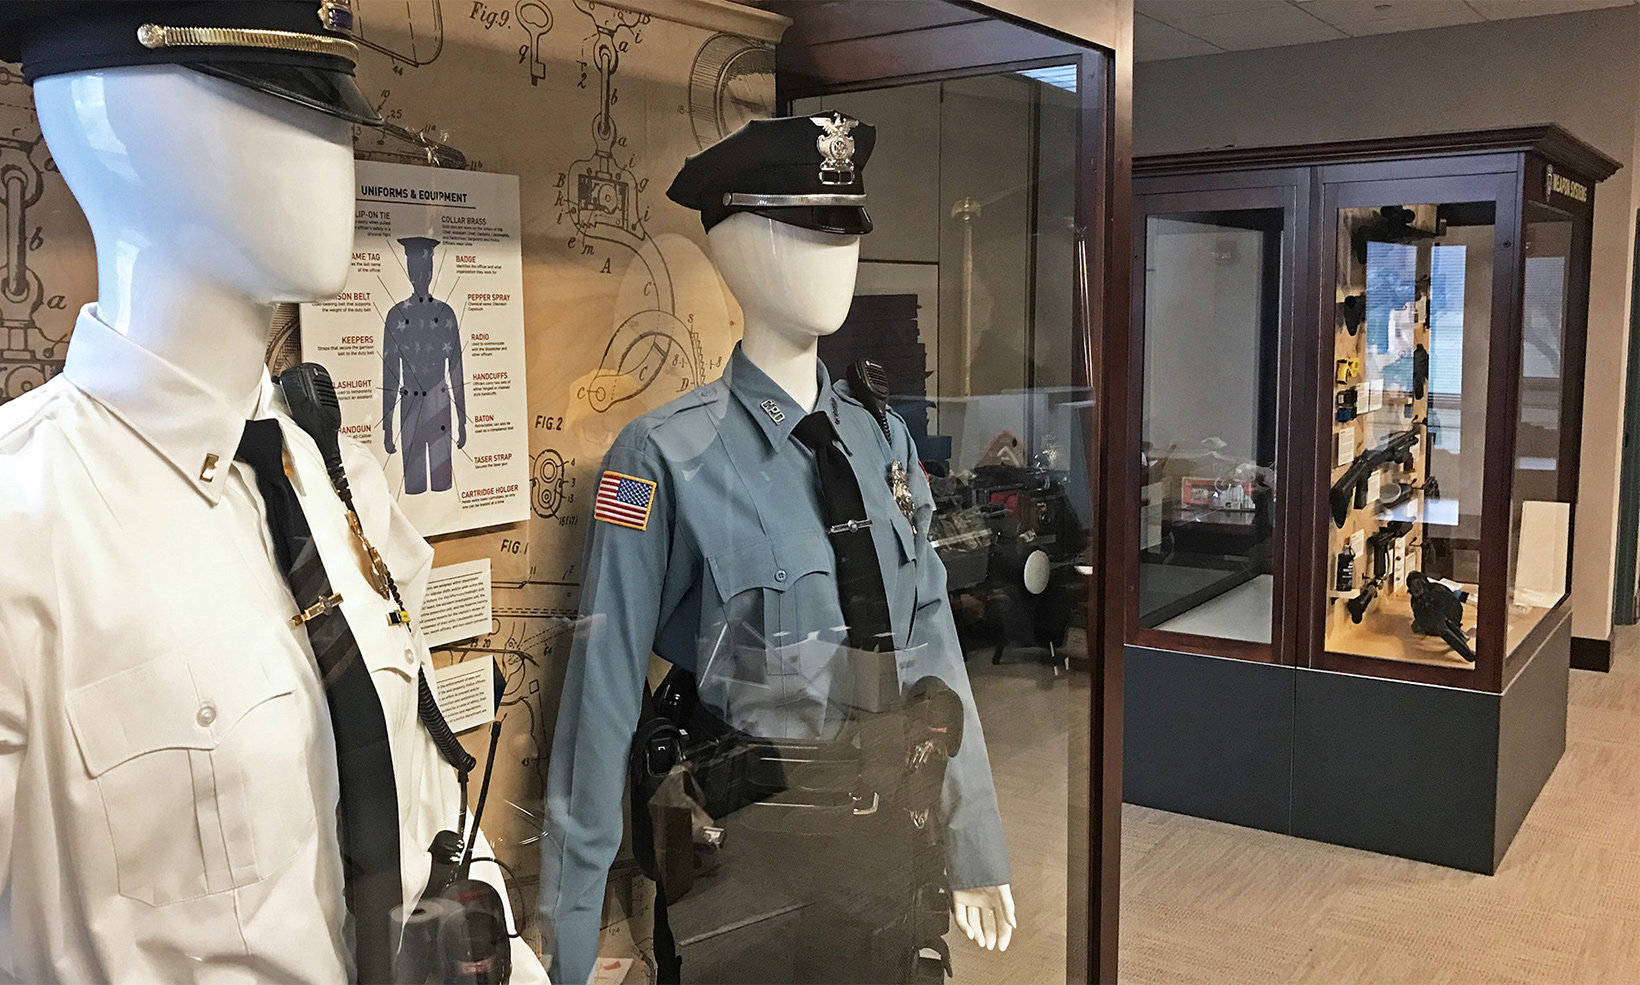 The beginnings of the Cheektowaga PD law enforcement museum, consisting of two display cases arranged with uniforms and firearms